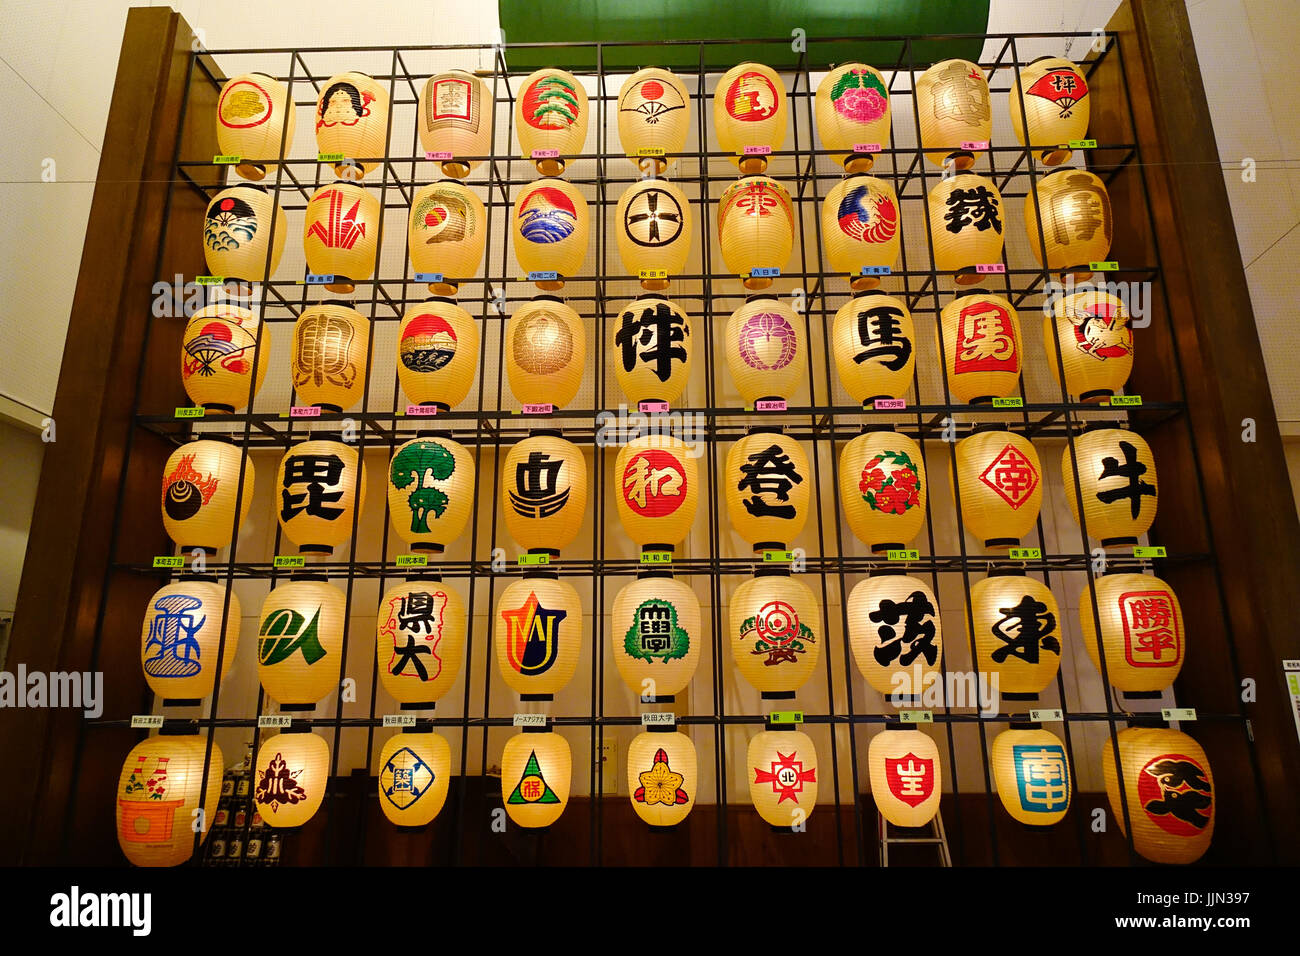 Akita, Japan - May 17, 2017. Kanto Lanterns at museum in Akita, Japan. Akita Kanto Festival, Important Intangible Stock Photo